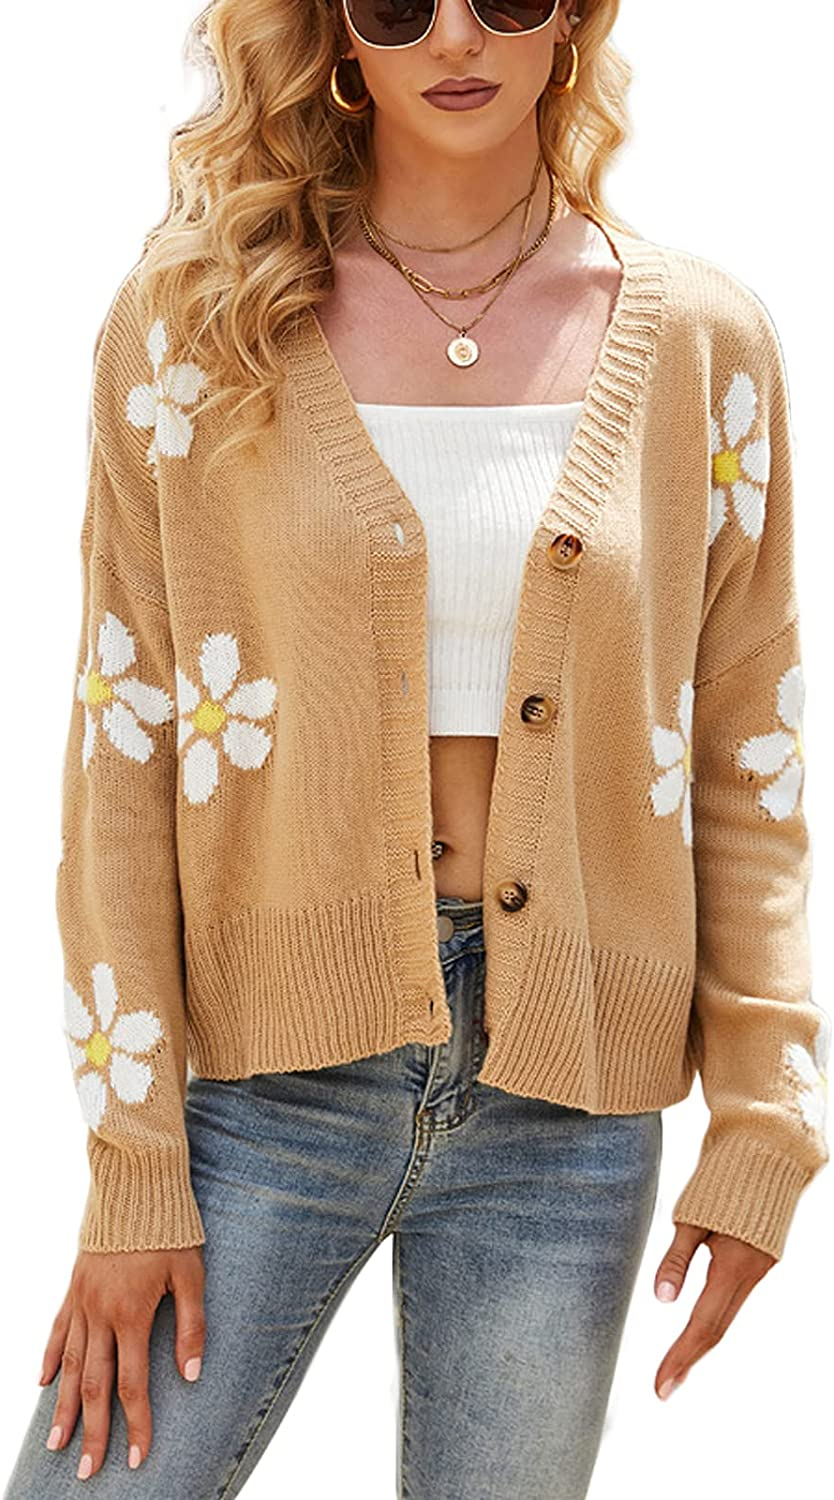 Women Y2k Knitted Sweater V Neck Long Sleeve Knit Cardigan Button Down Loose Casual 90s Knitwear Coat